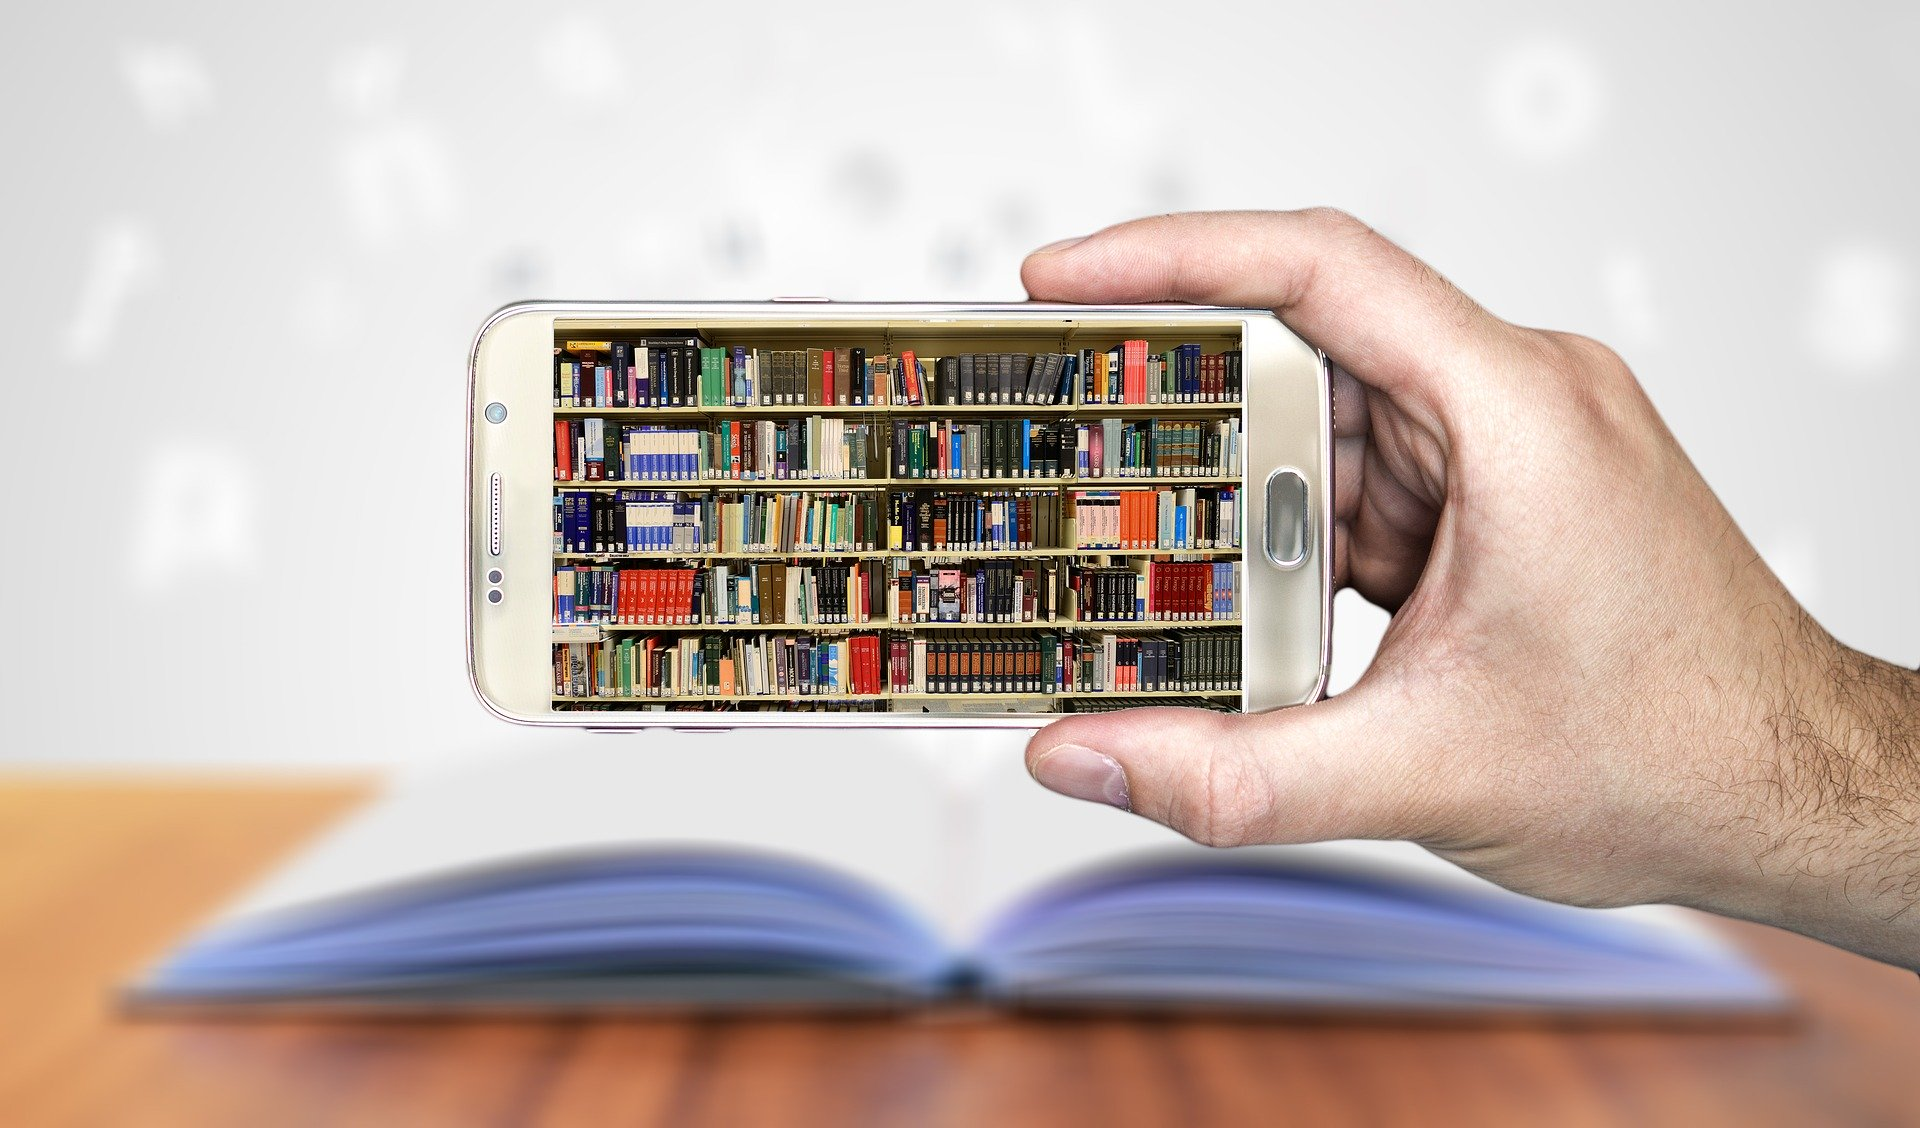 smartphone showing image of bookshelves